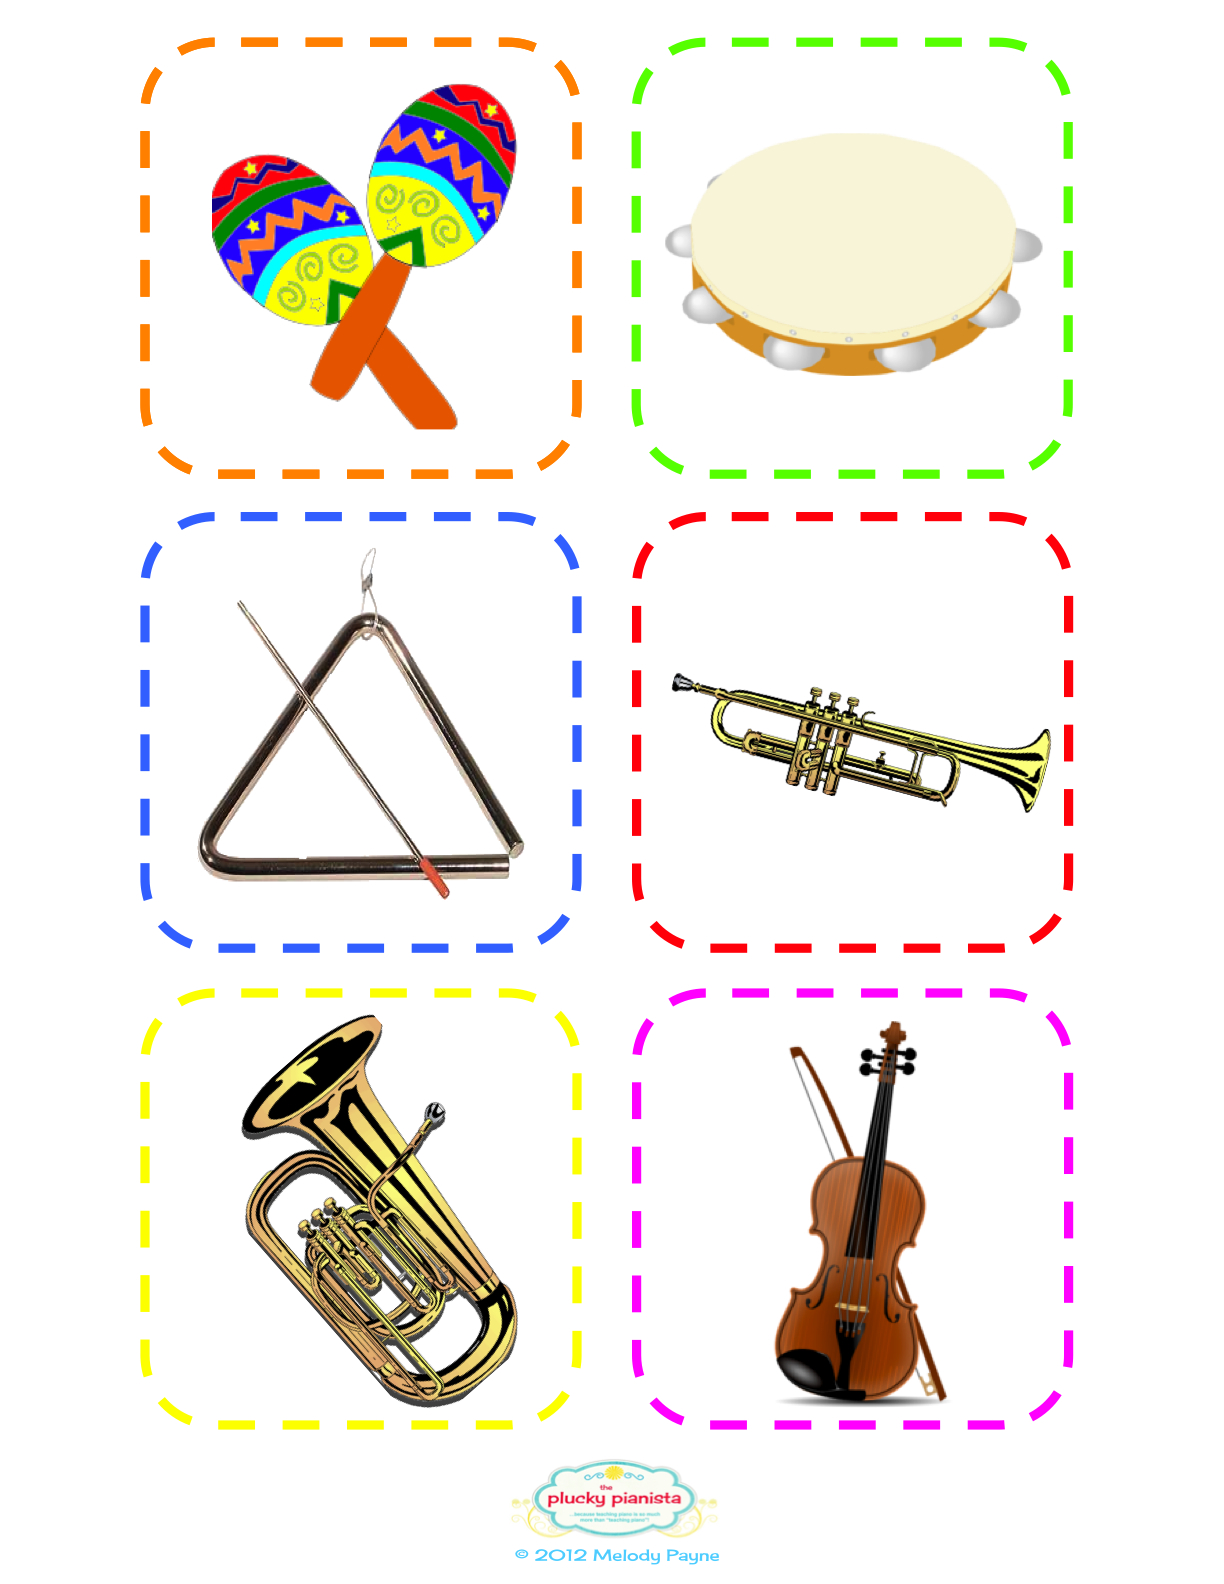 The Plucky Pianista Musical Instrument Flash Cards